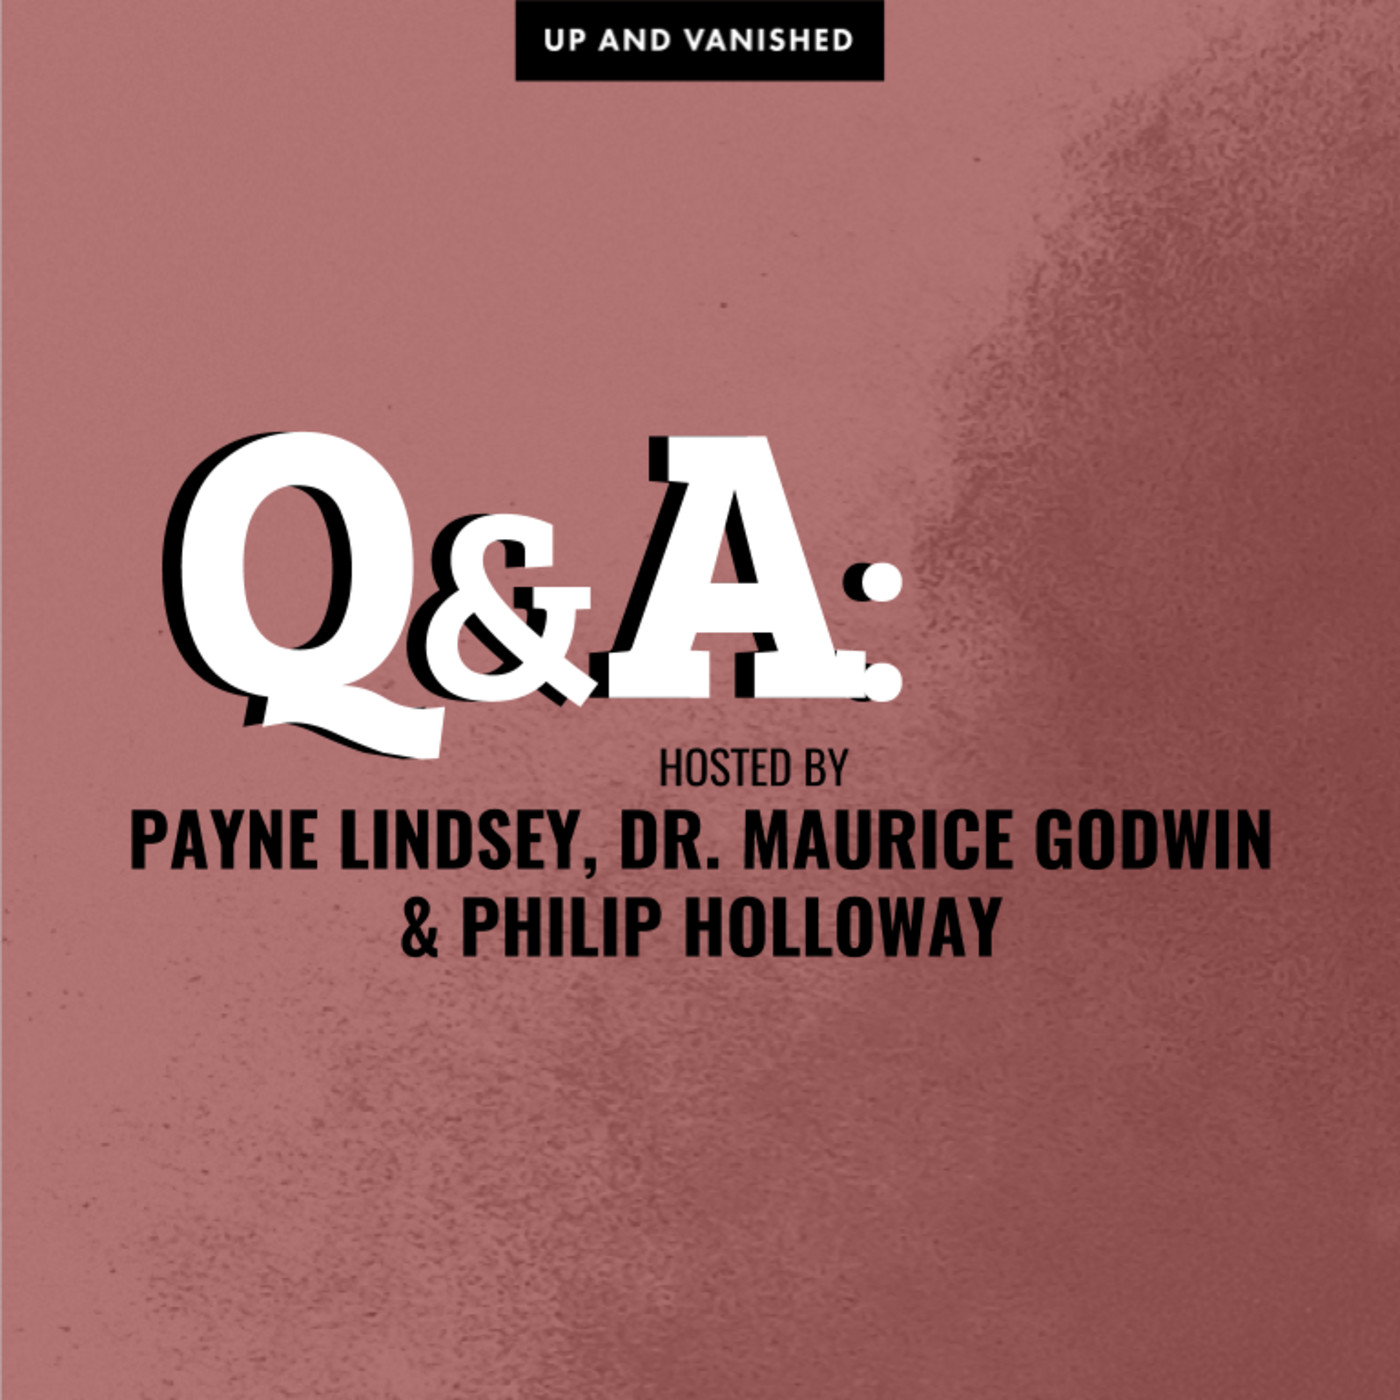 S1E : Q&A with Payne Lindsey, Dr. Maurice Godwin, & Philip Holloway 07.20.17